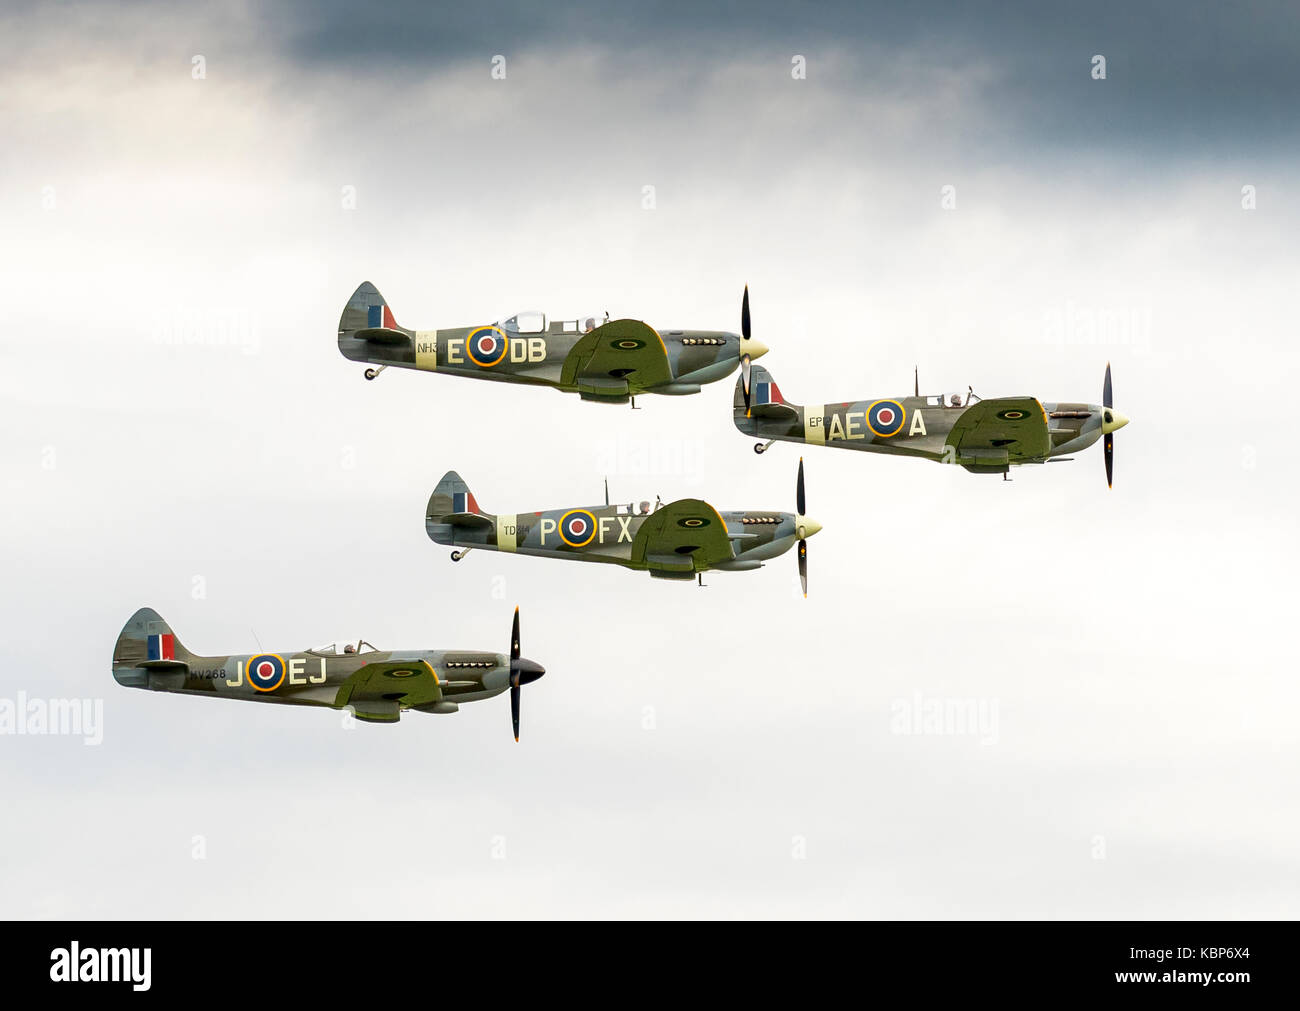 Air Show WW2 Planes - Stock Image